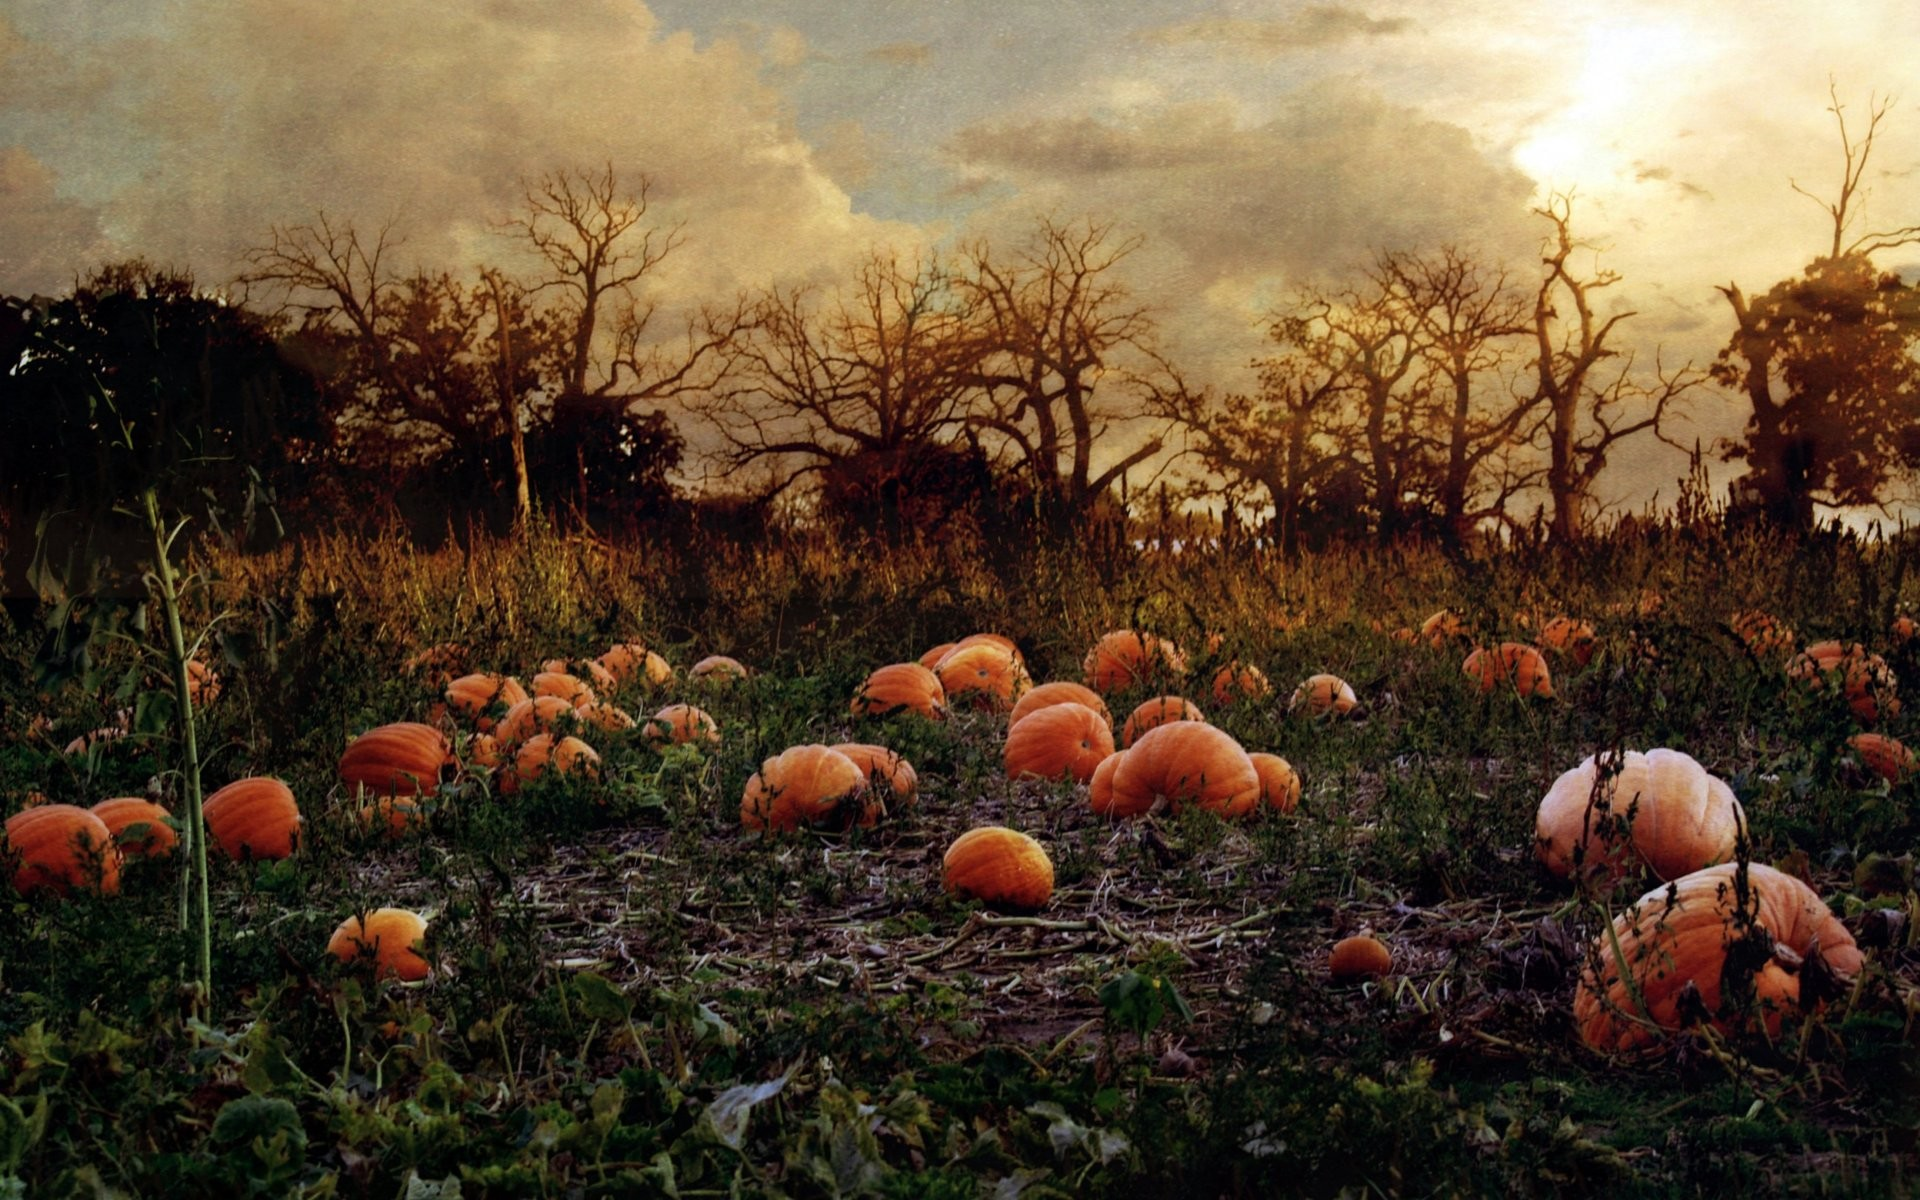 Free Images Pumpkin Wallpapers HD.